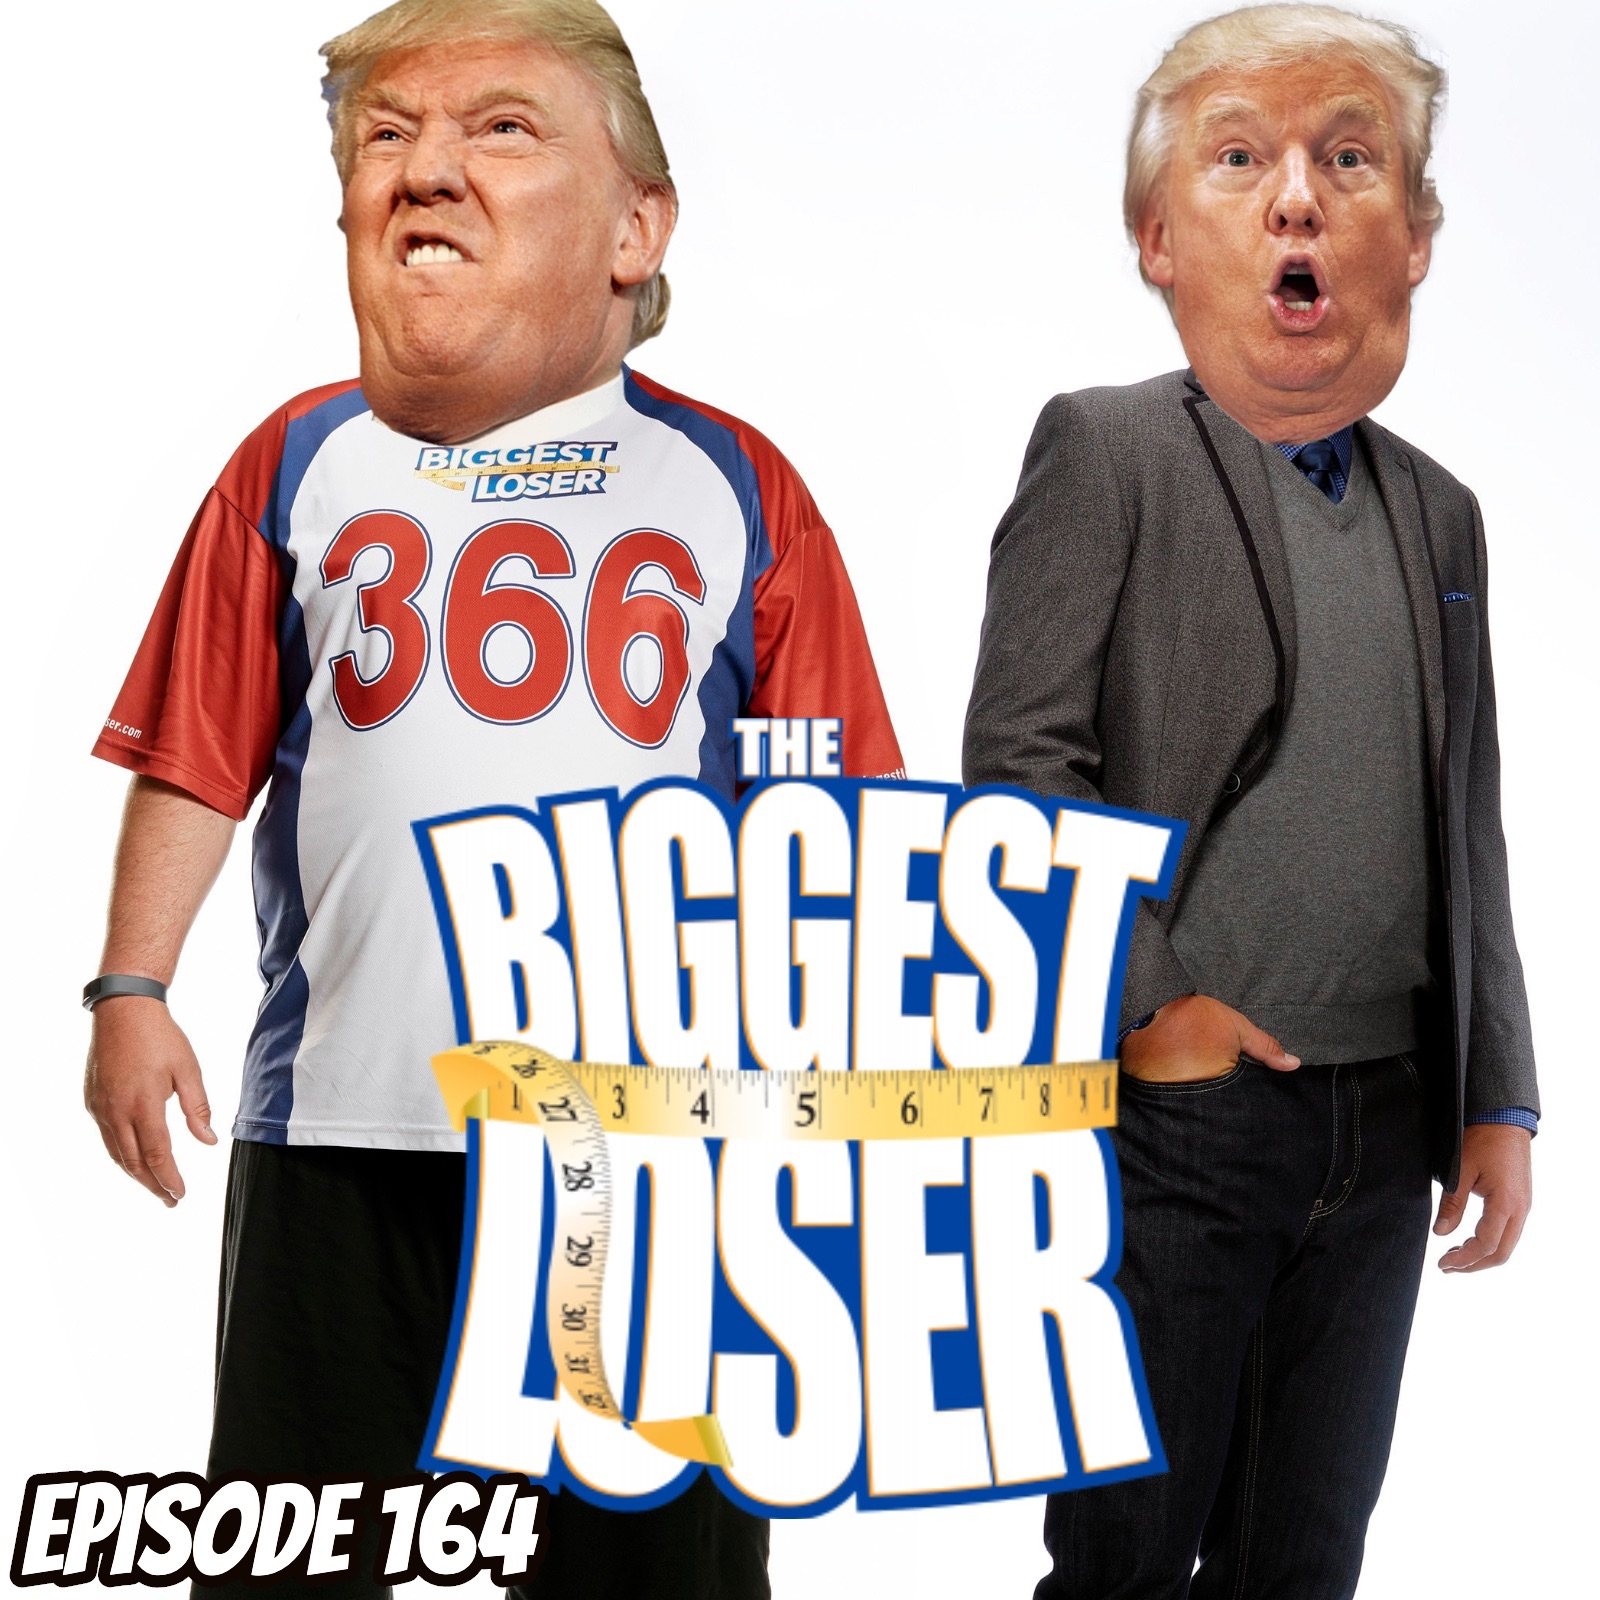 Look Forward - Ep164: Donald Trump is THE BIGGEST LOSER!